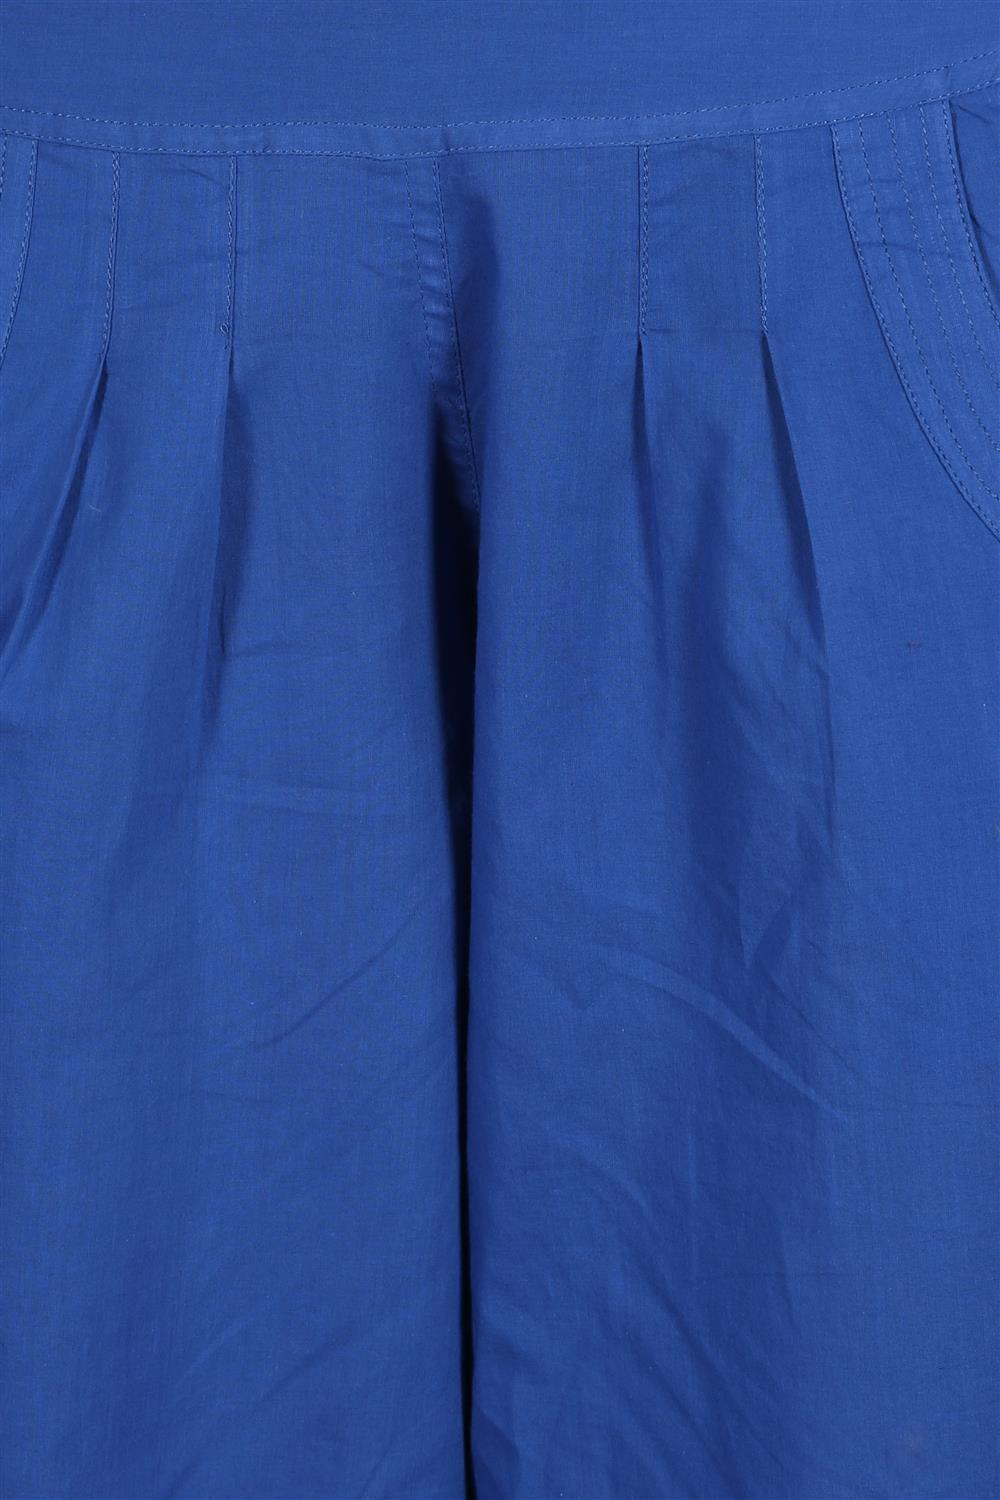 BLUE ELASTIC PANTS